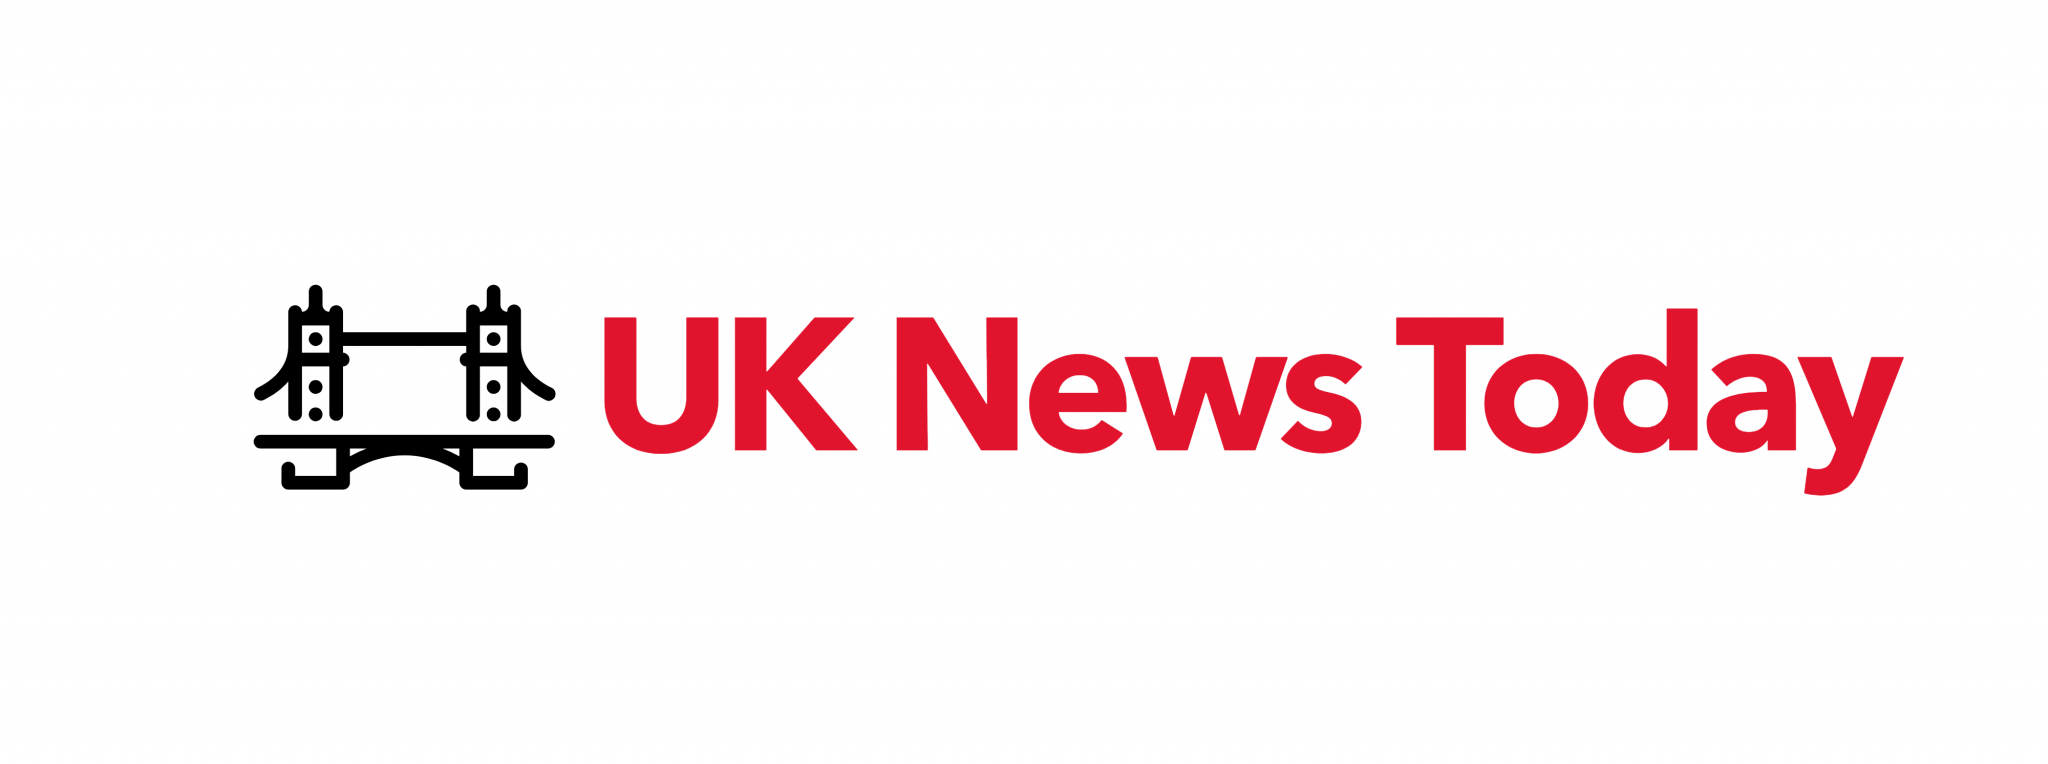 get the latest UK news today